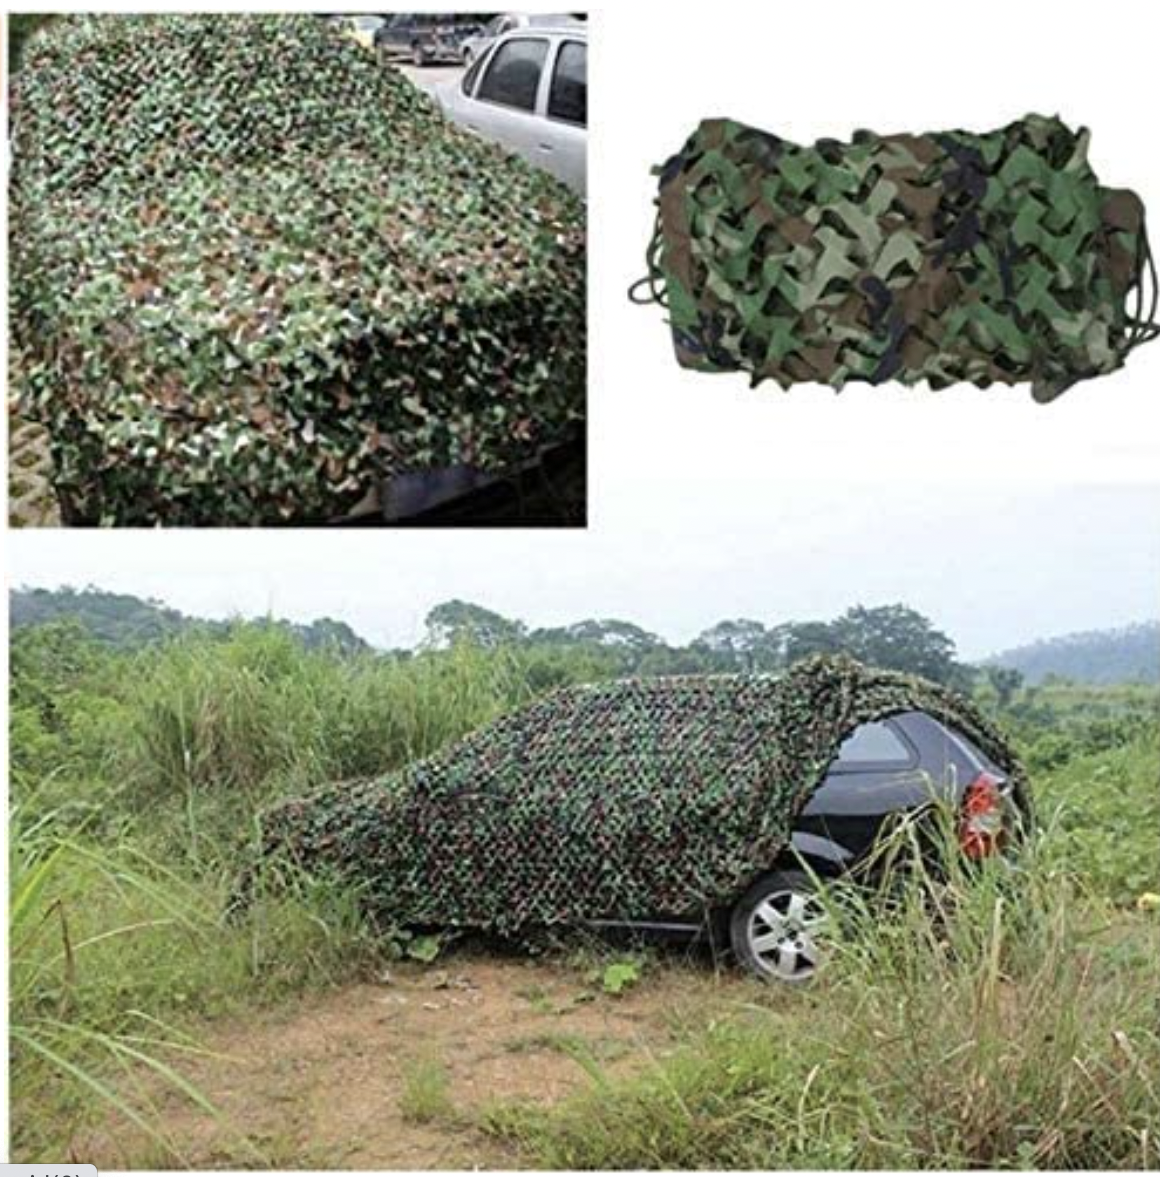 COLIBROX 20X13 FT Woodland Shooting Hide Army Camouflage Net Hunting Cover Camo Netting